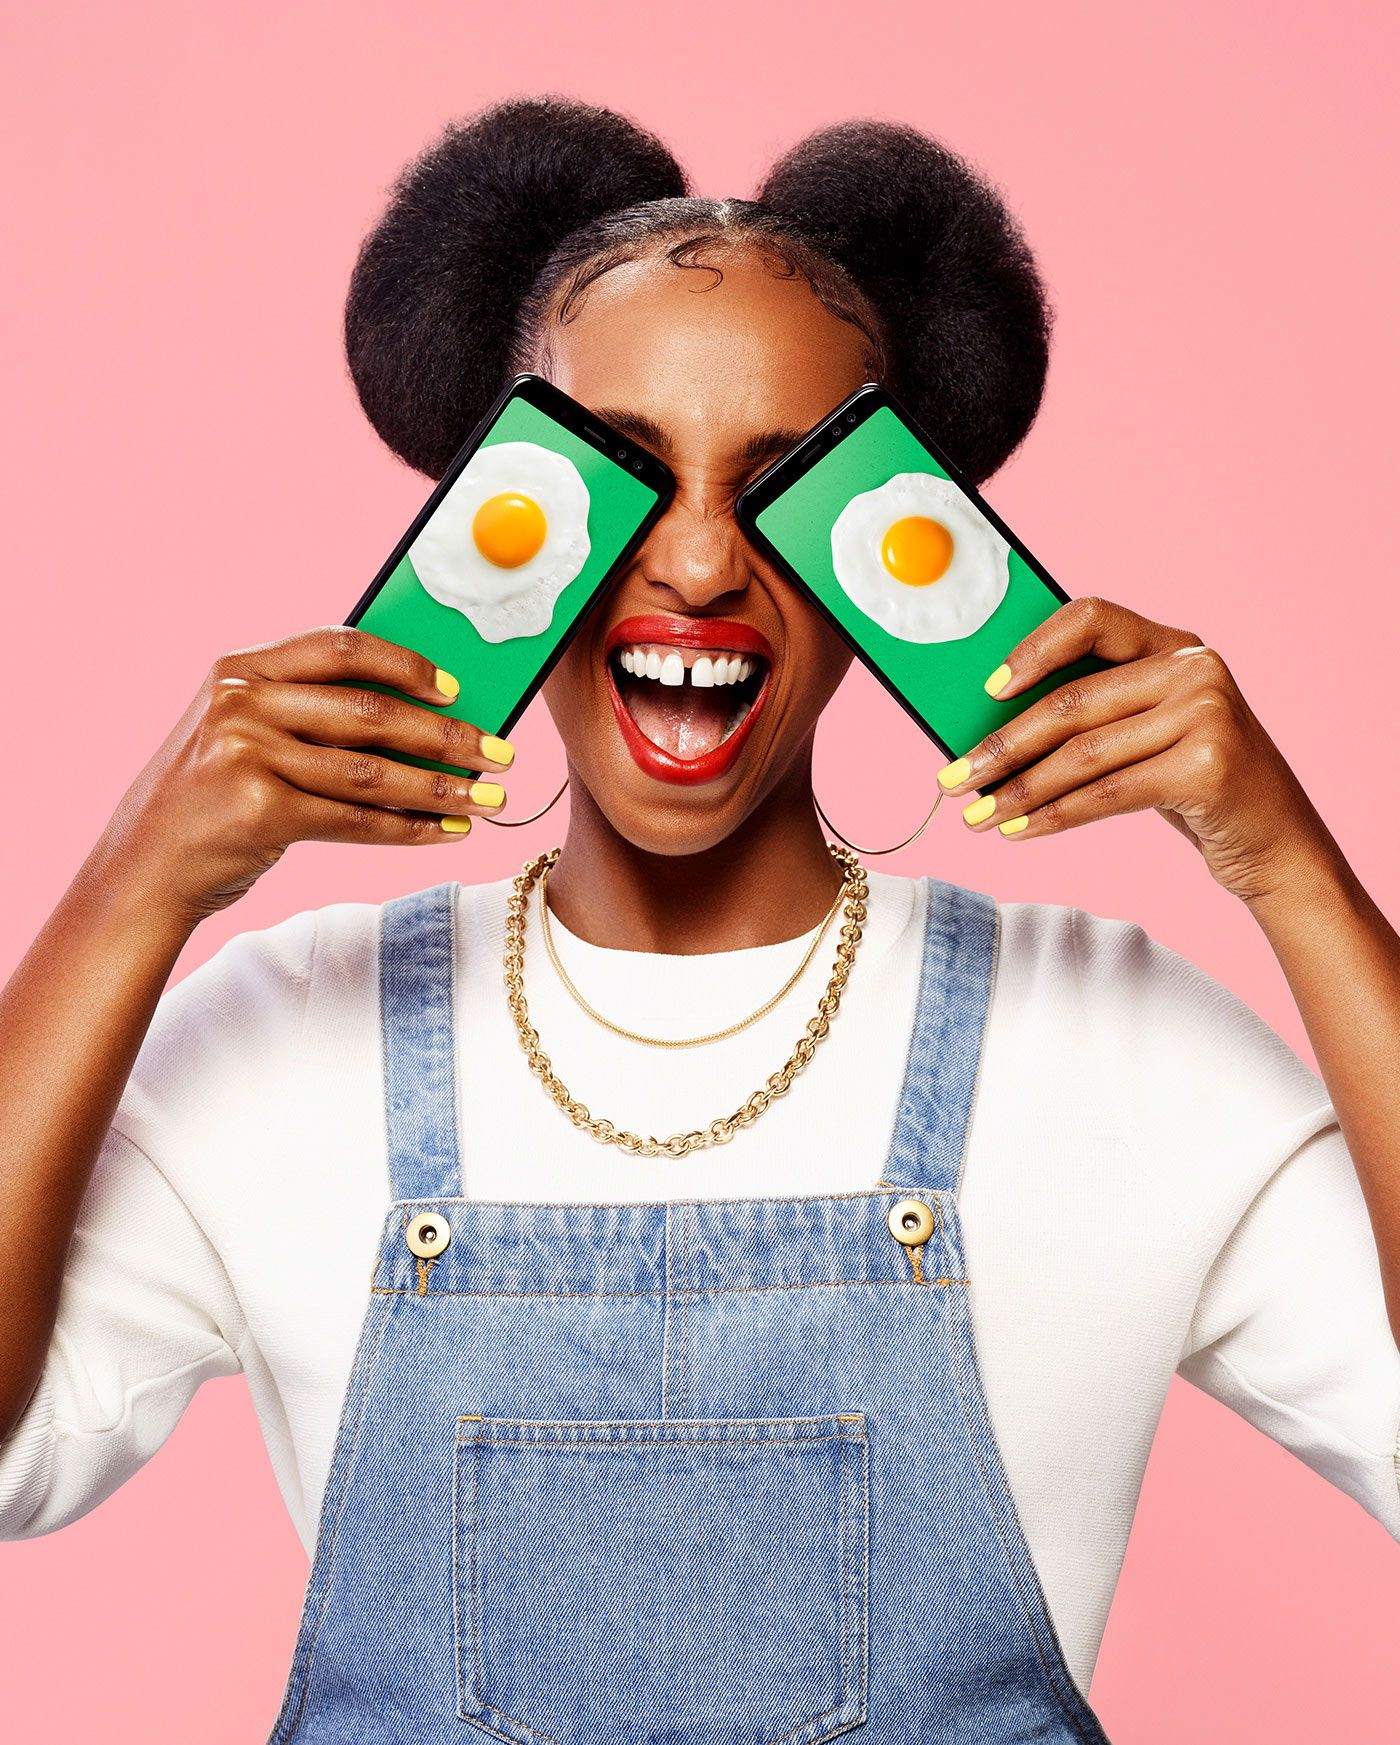 black woman wearing jeans overall and white shirt on pink background with big smile holding two telephones over her eyes displaying pictures of sunny side up eggs by Simon Duhamel for Fizz brand launch with Ogilvy